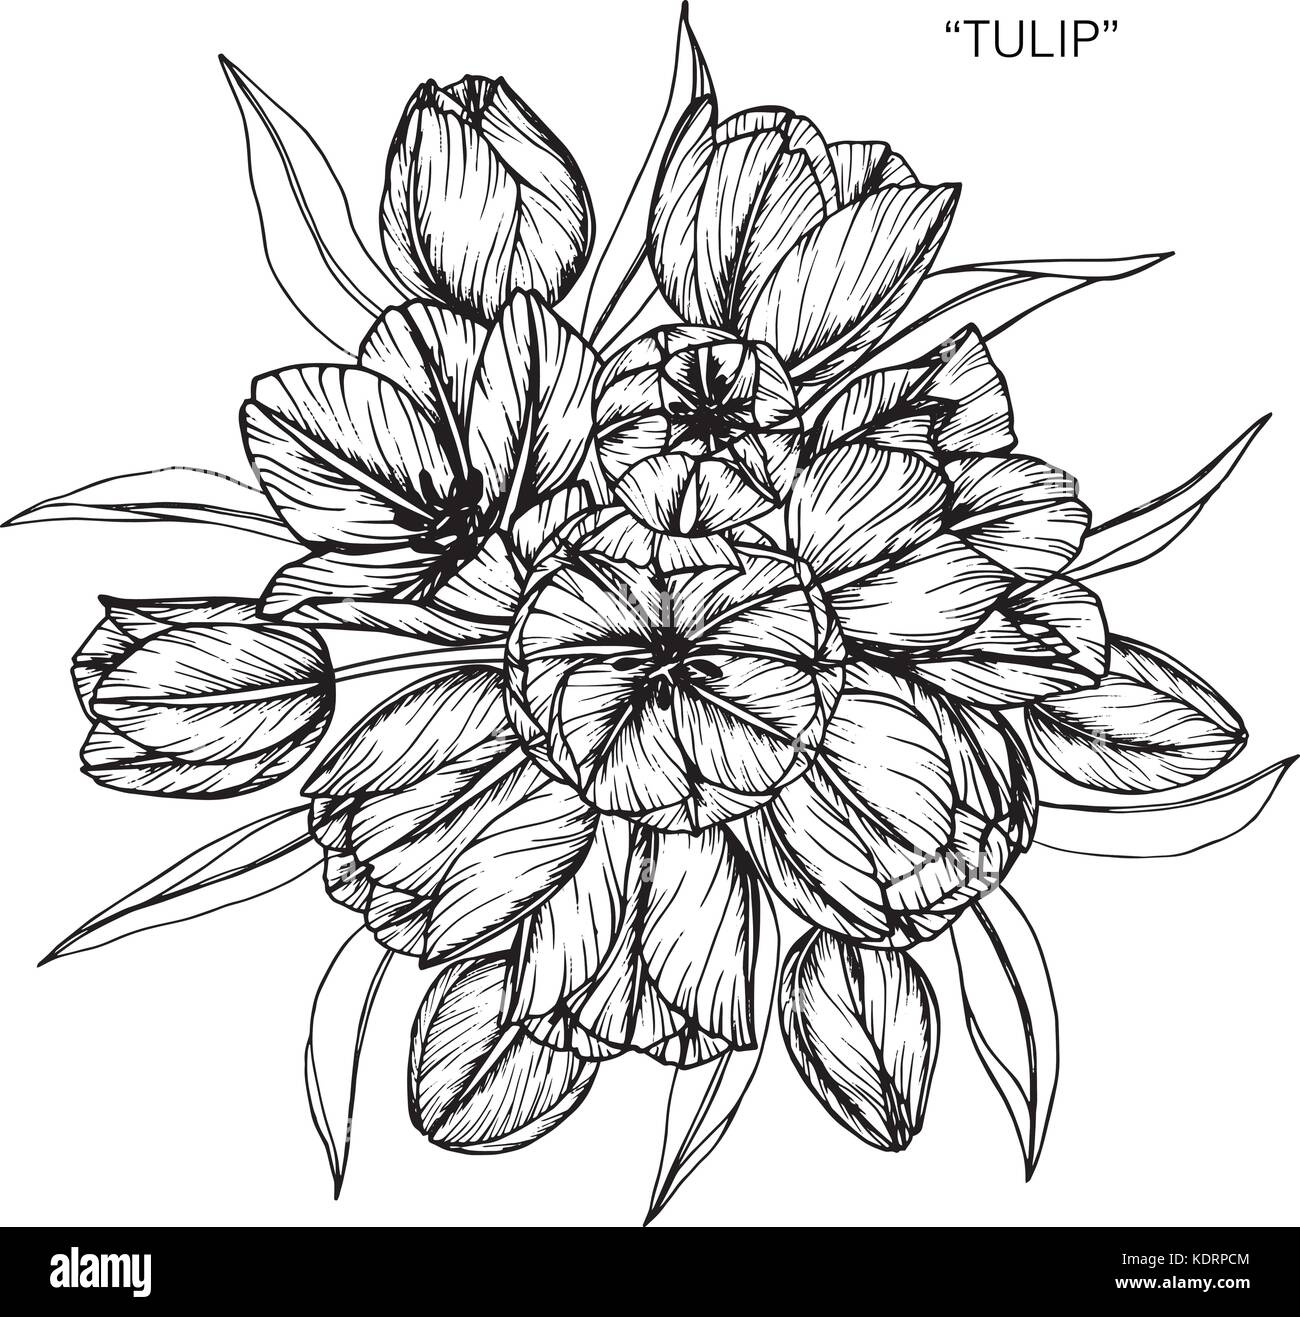 Bouquet of tulip flowers drawing illustration black and white with line art